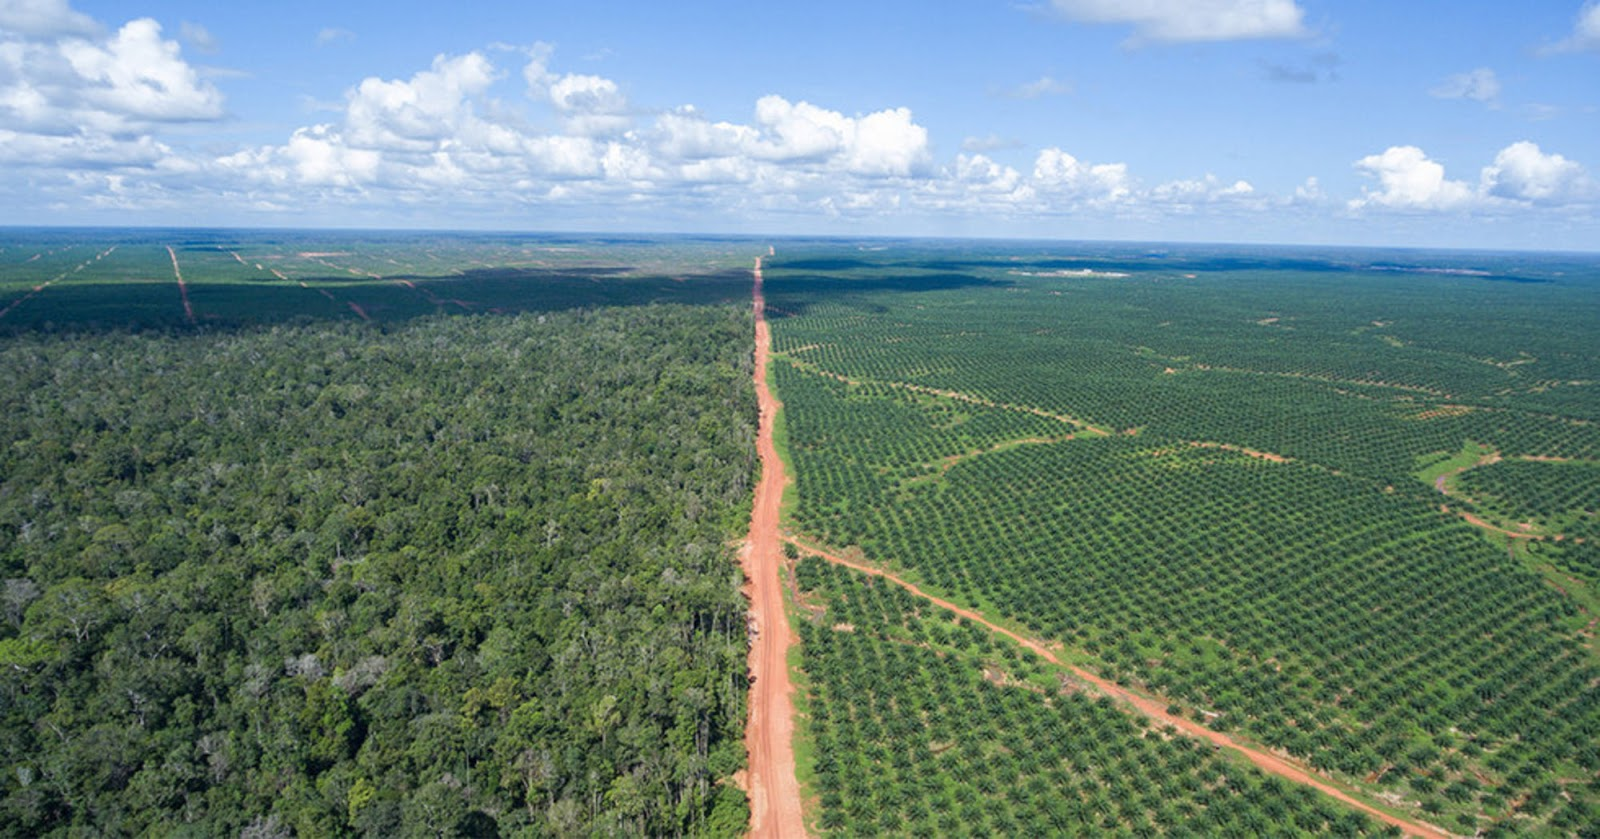 agriculture also affects our forests just imagine how much moisture and shade those trees provide